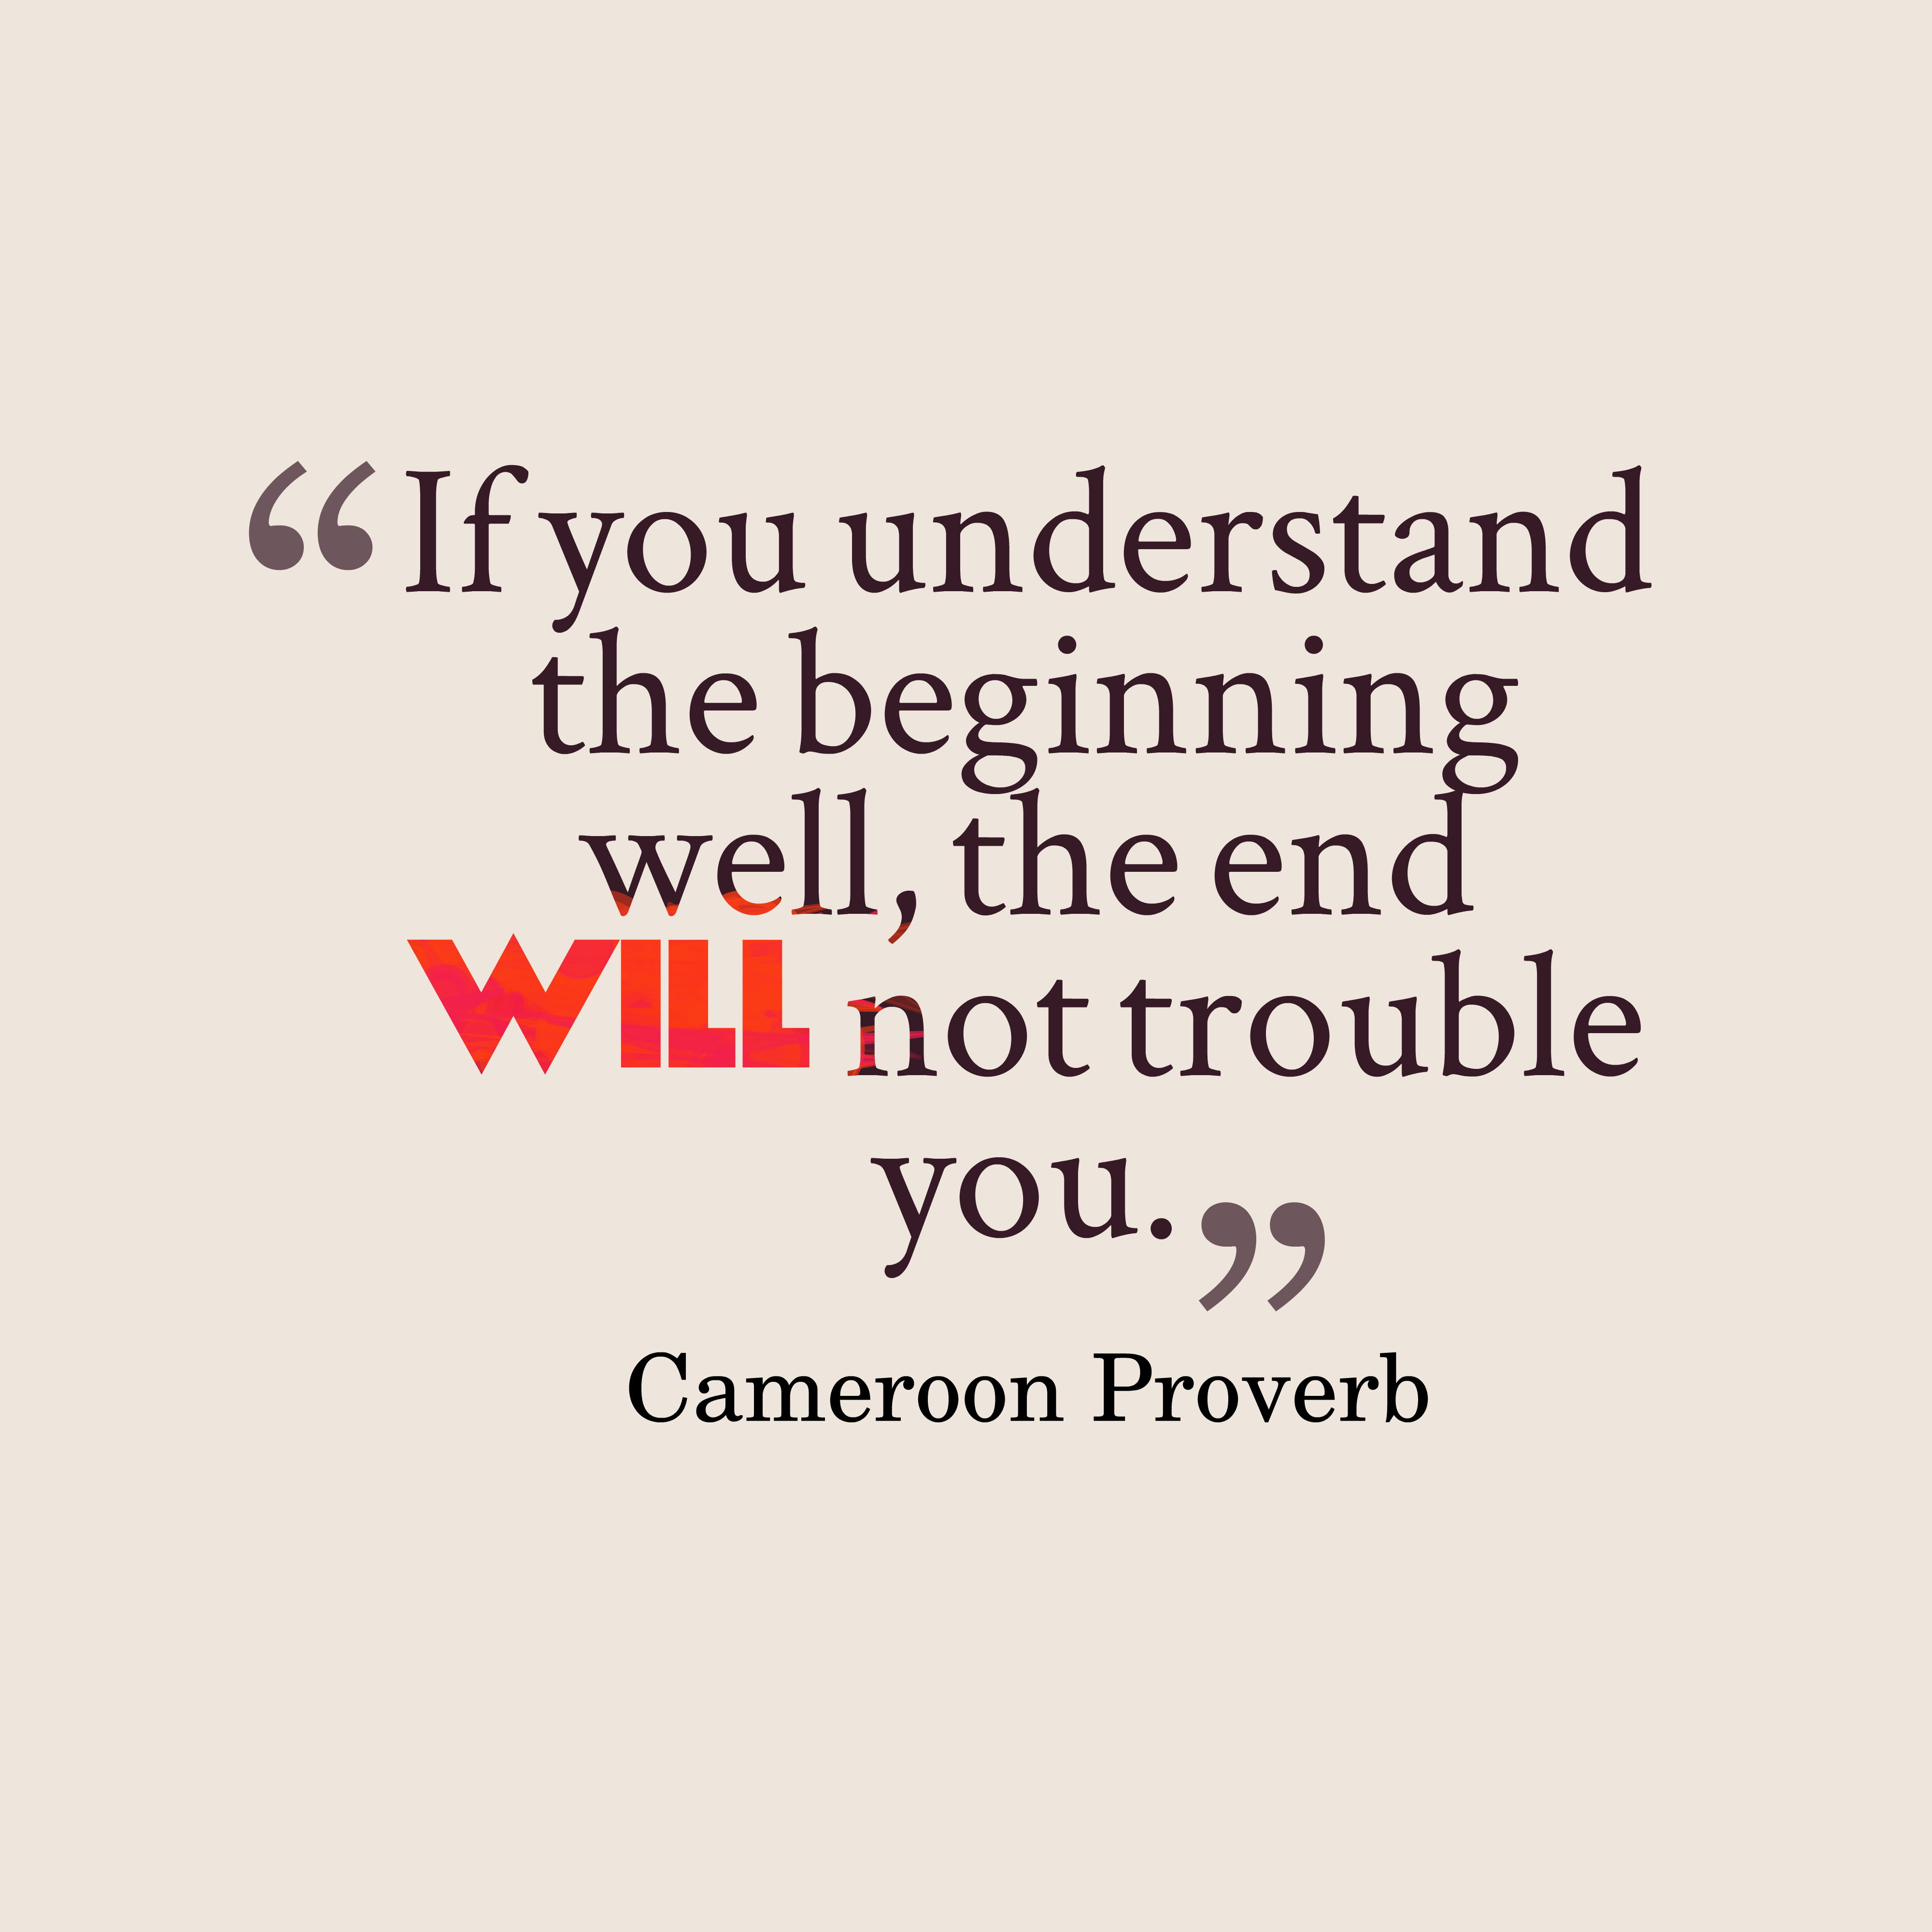 Quotes image of If you understand the beginning well, the end will not trouble you.